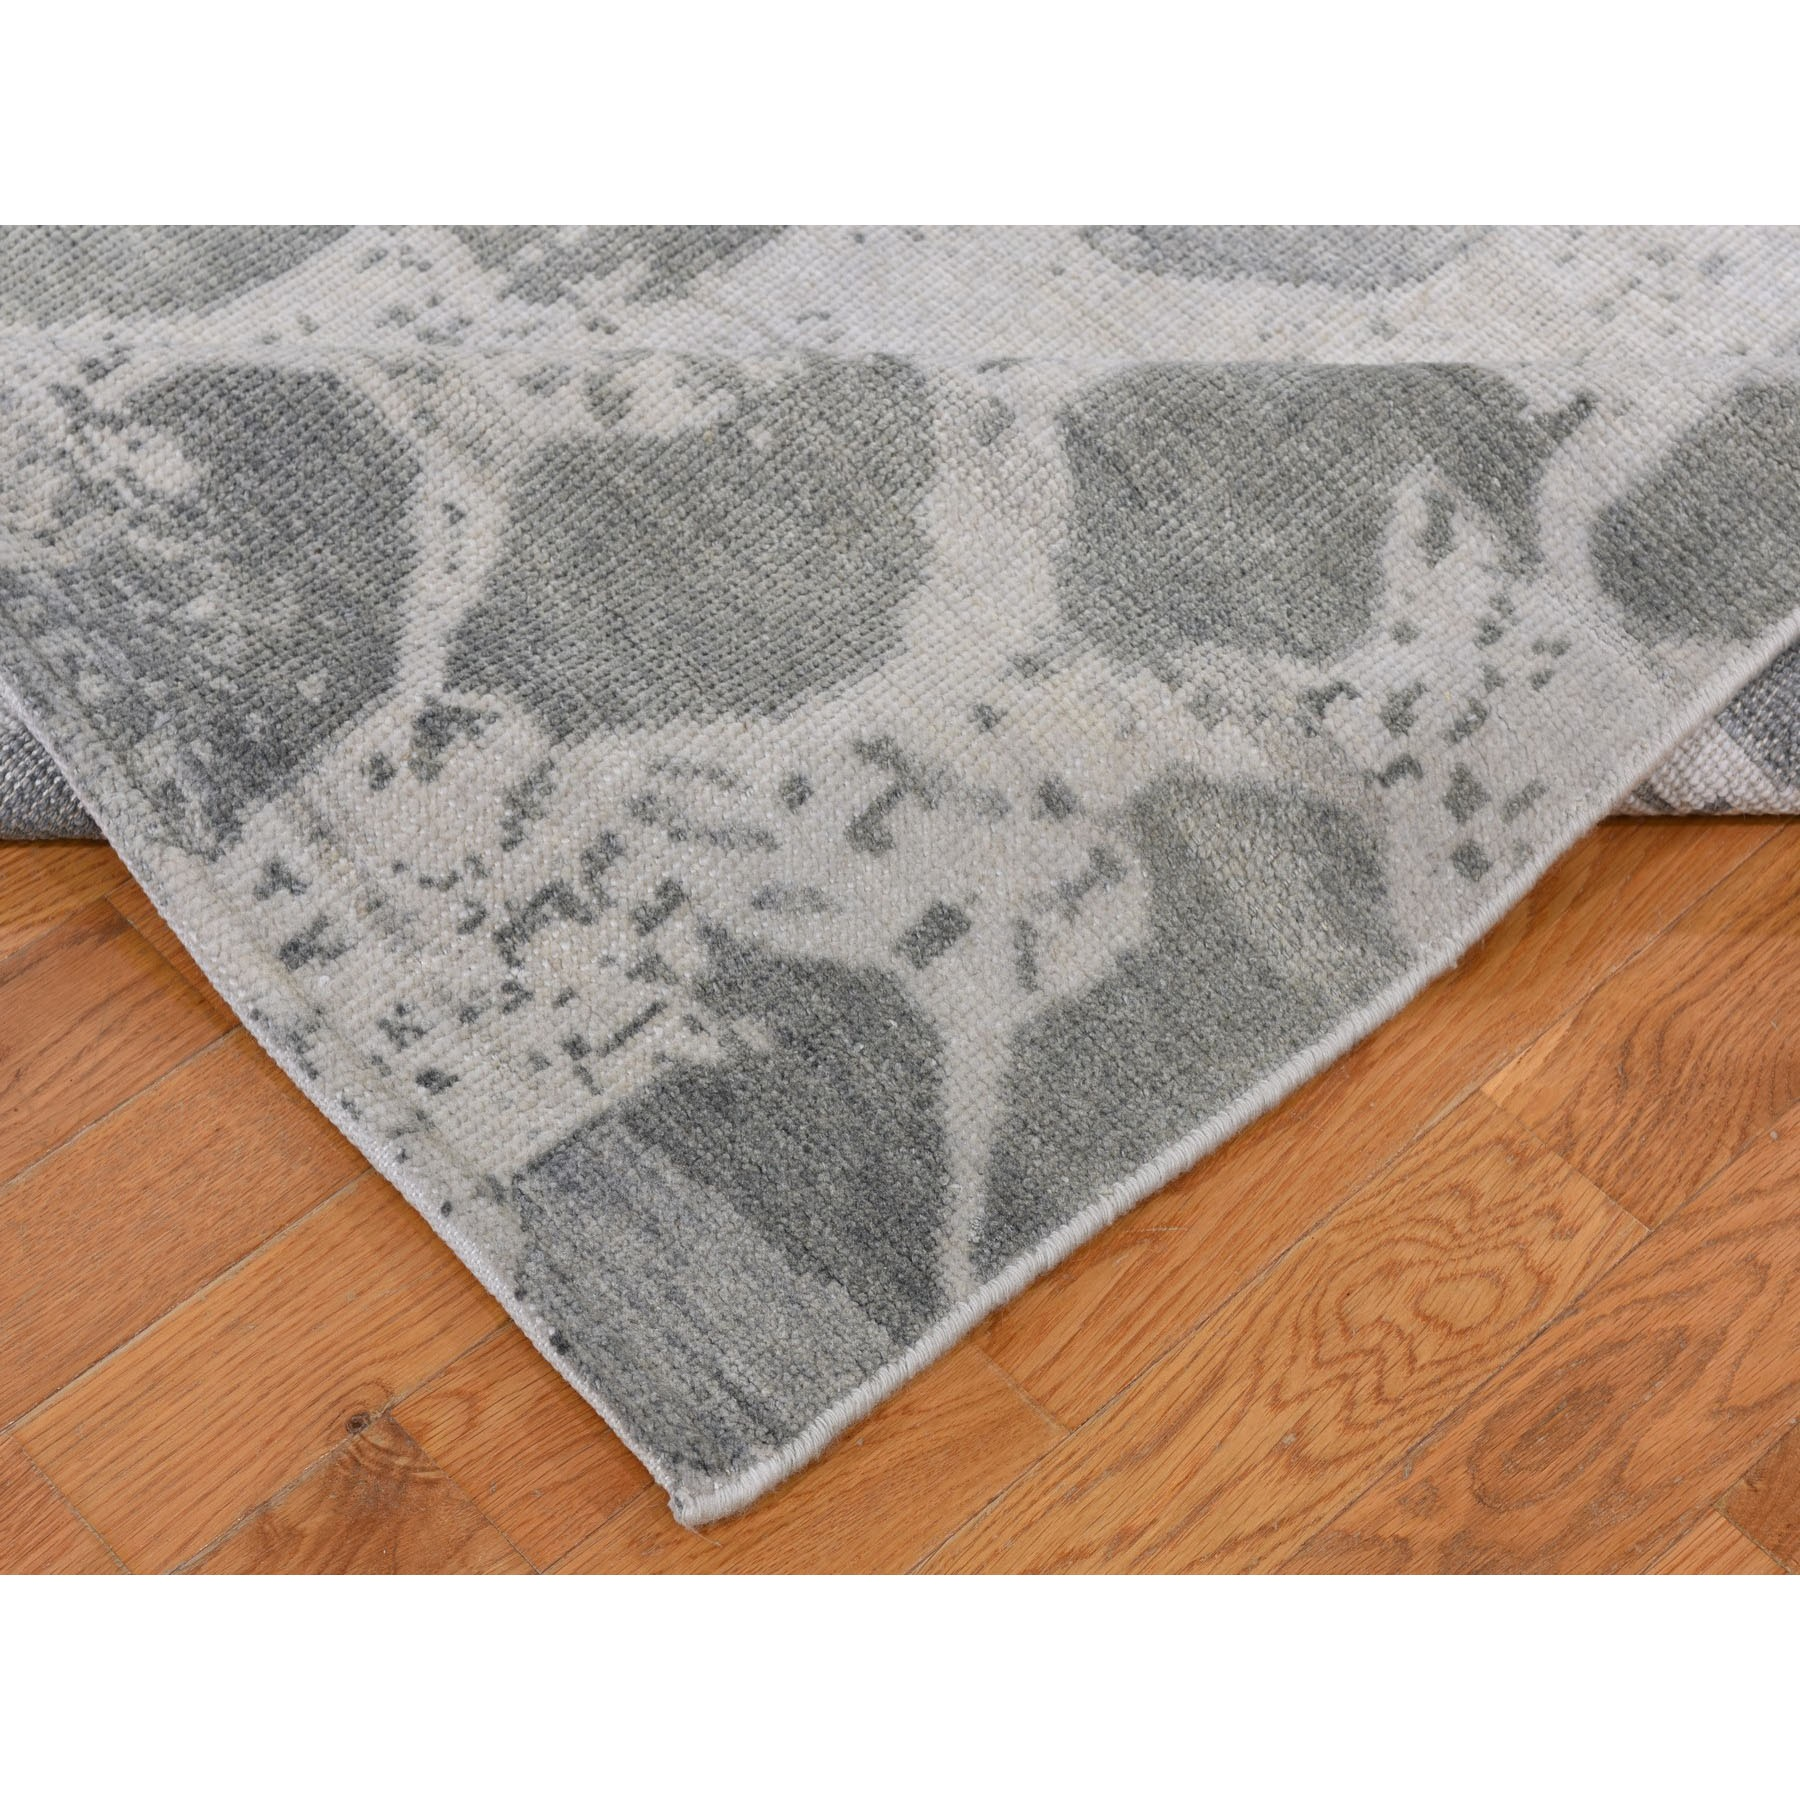 "5'10""x9' Distressed Look White Wash Oushak Boteh Design  Pure Wool Hand Knotted Oriental Rug"